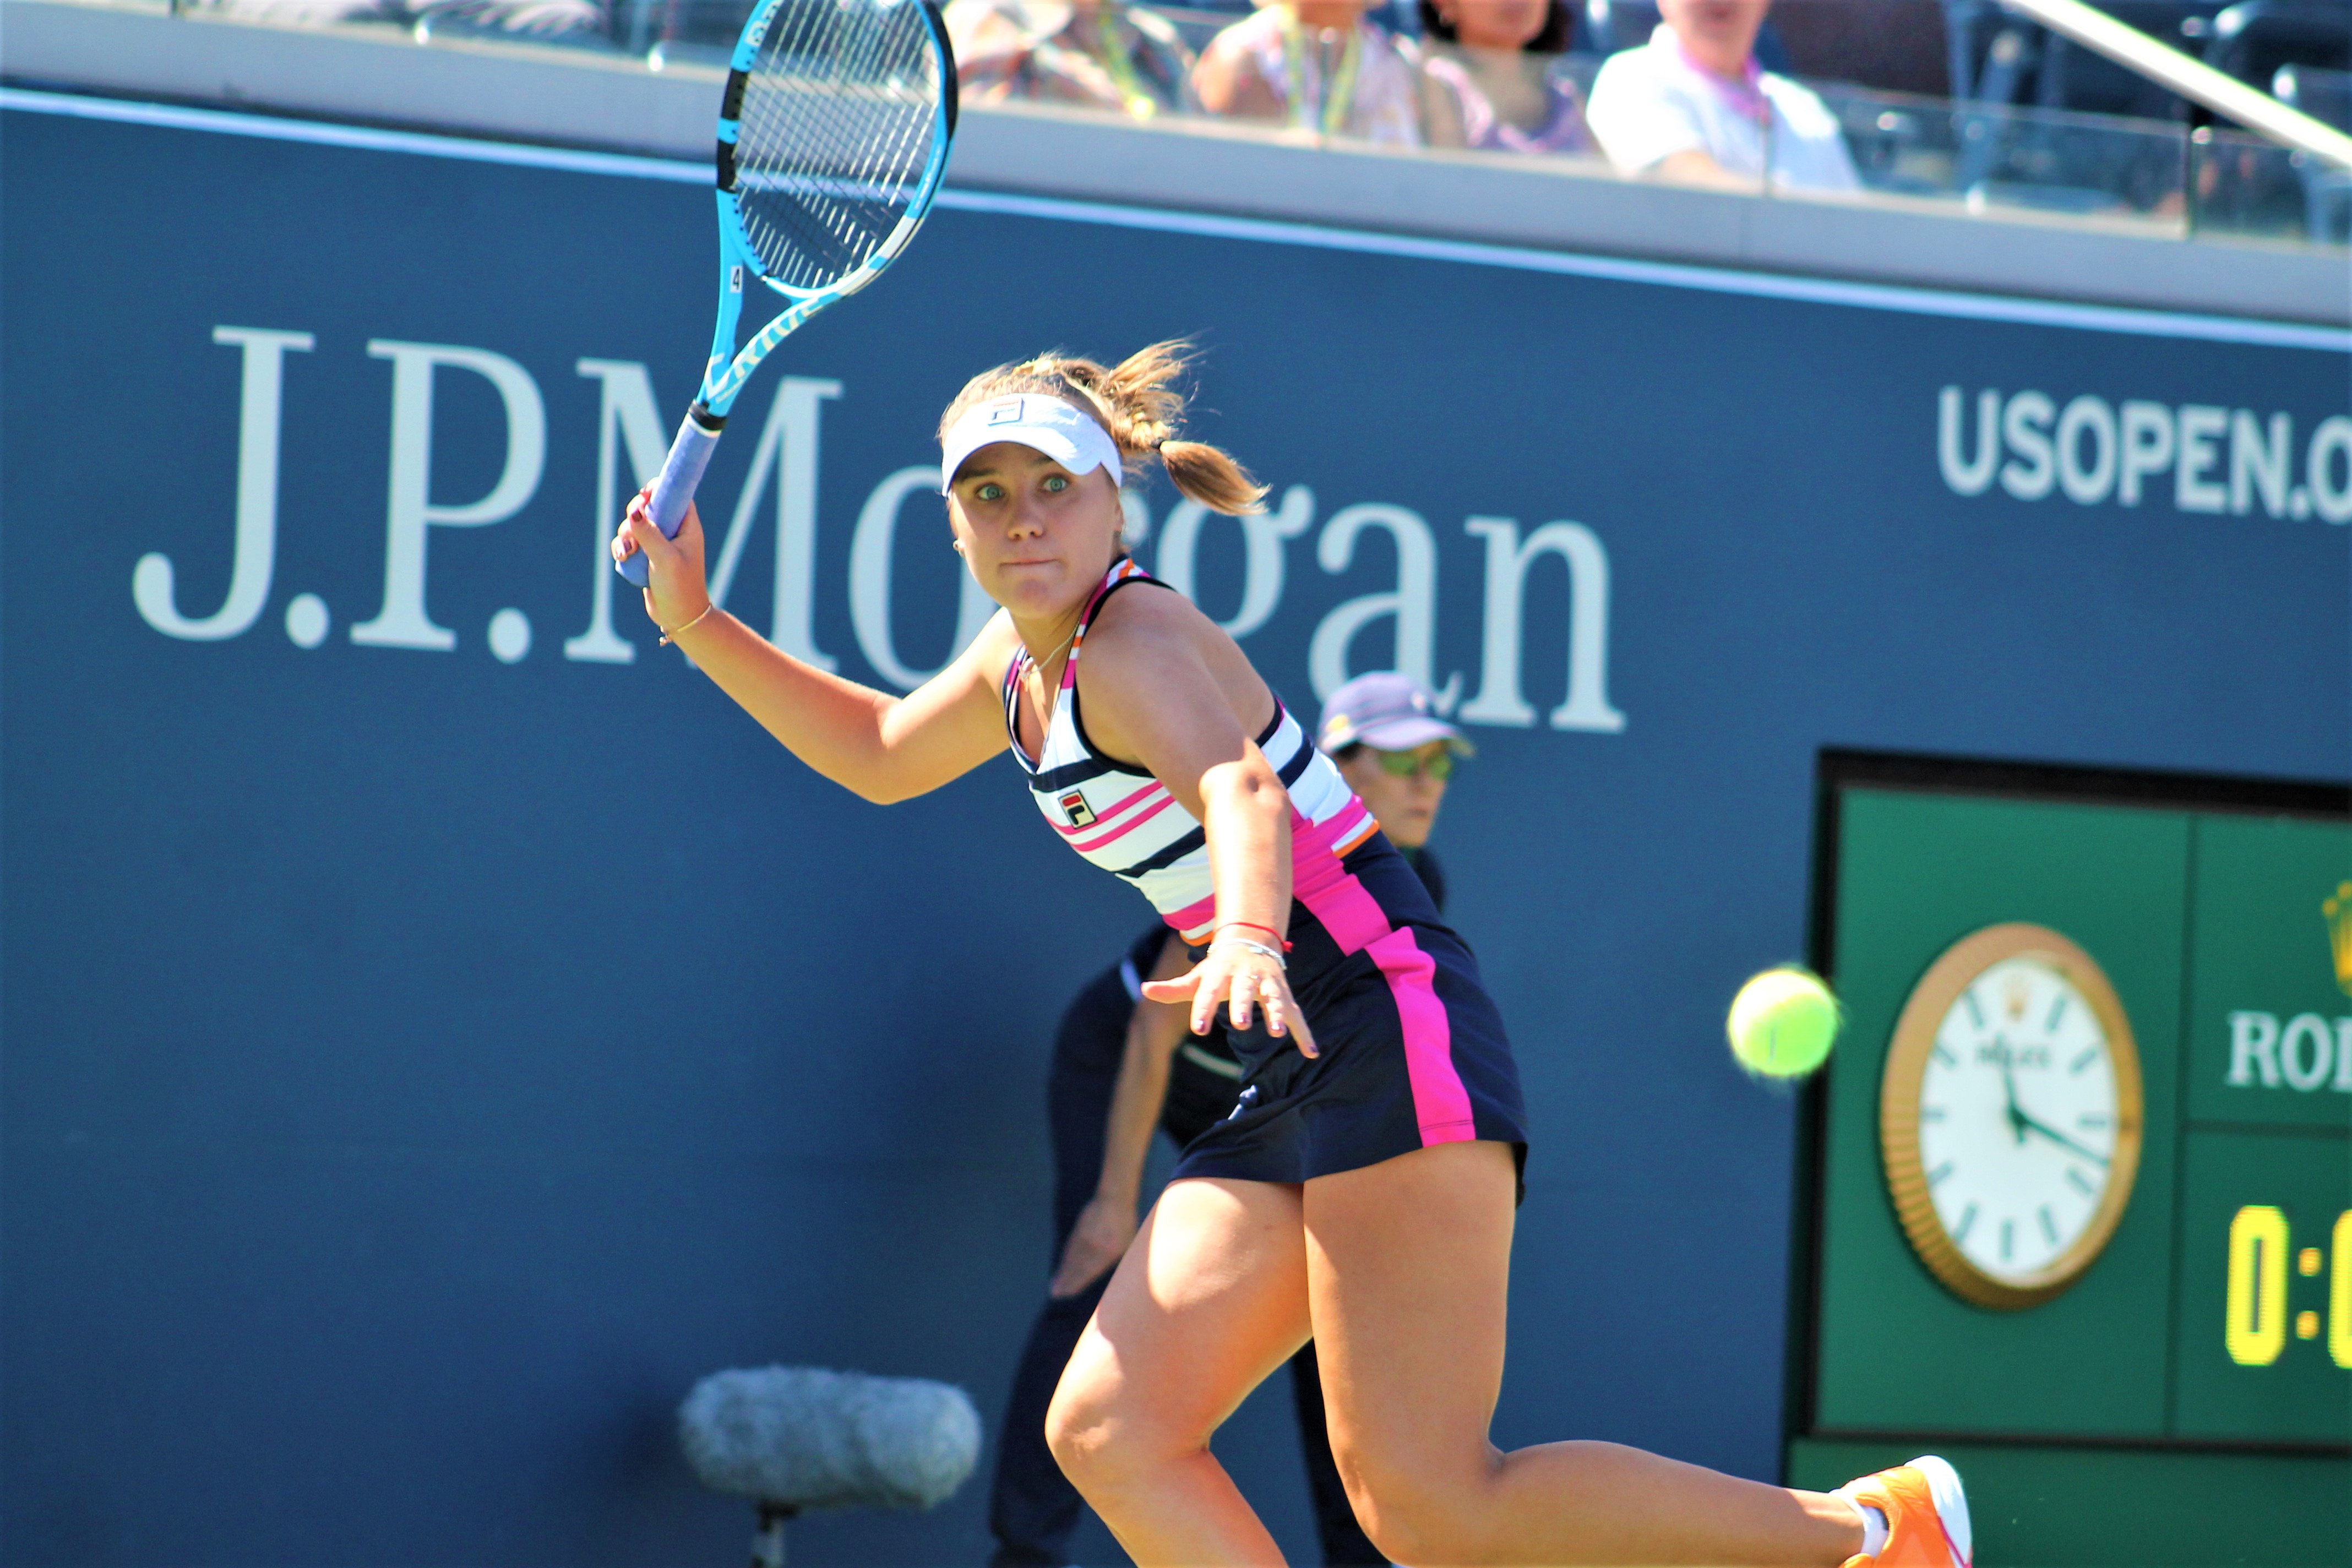 Sofia Kenin defeated German Laura Siegemund Thursday afternoon at the US Open to advance to the third round